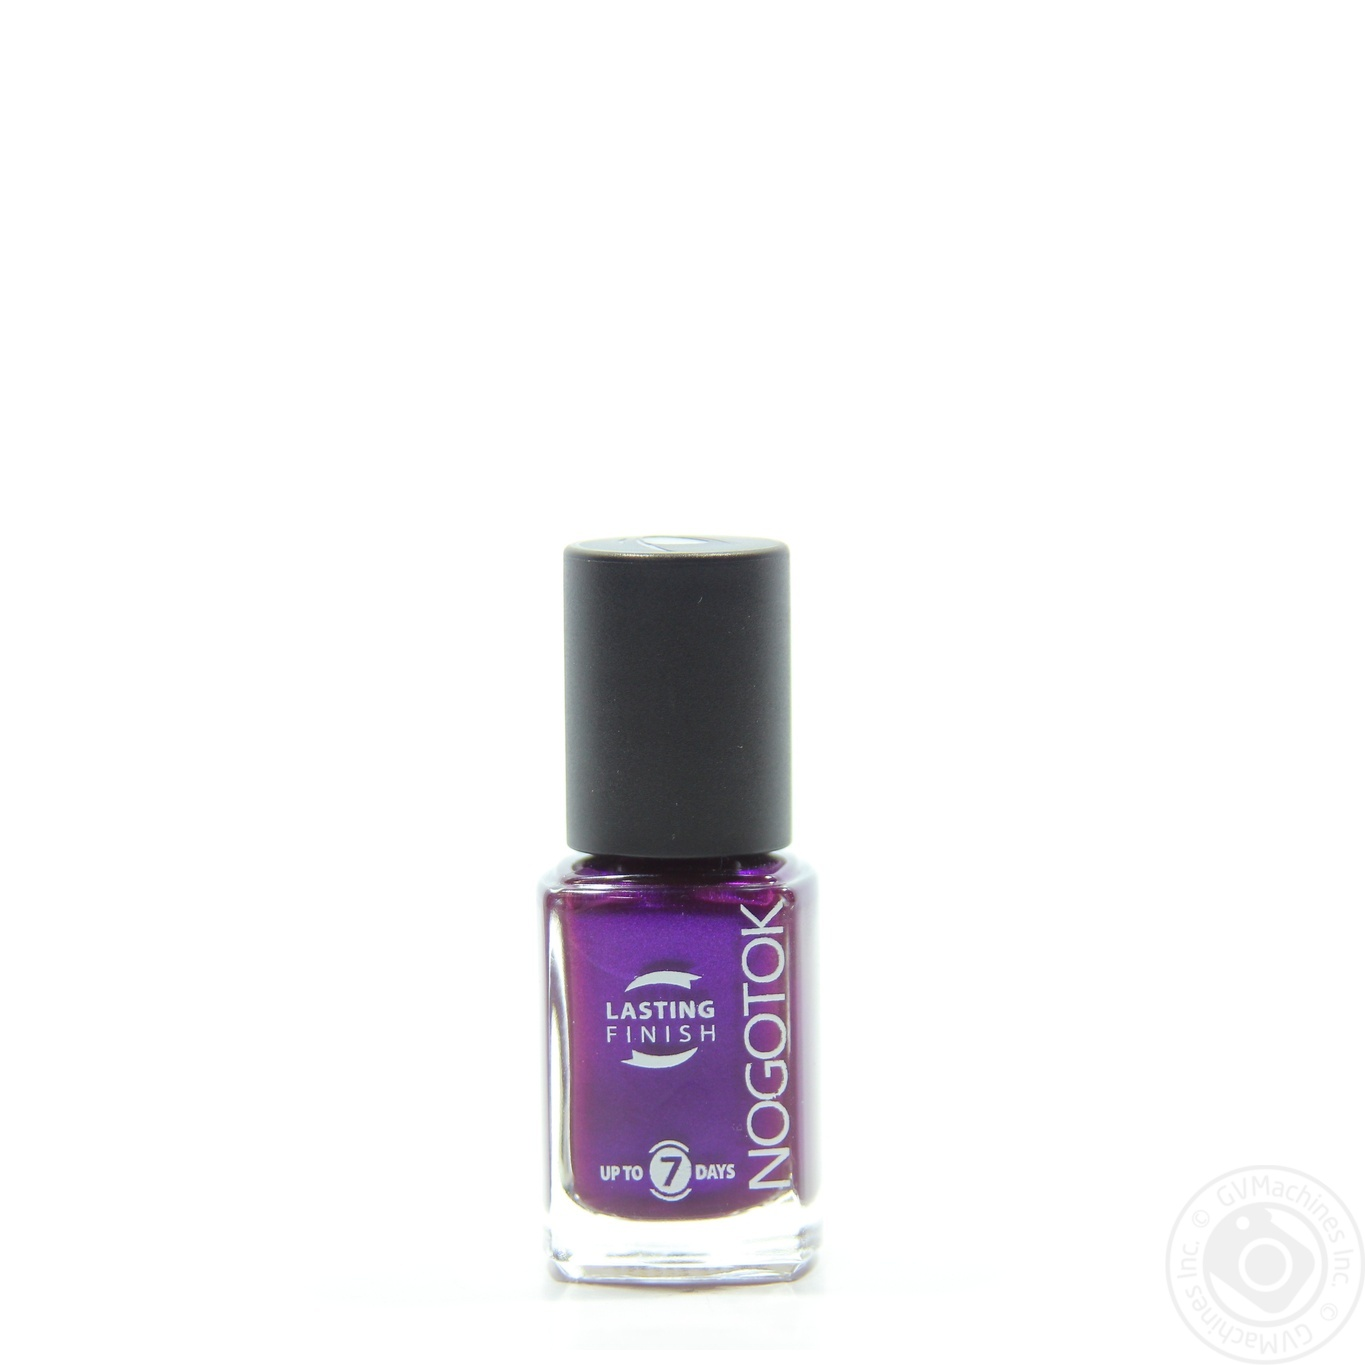 Lacquer Nogotok for nails 12ml → Hygiene → Care → Hands and nails ...